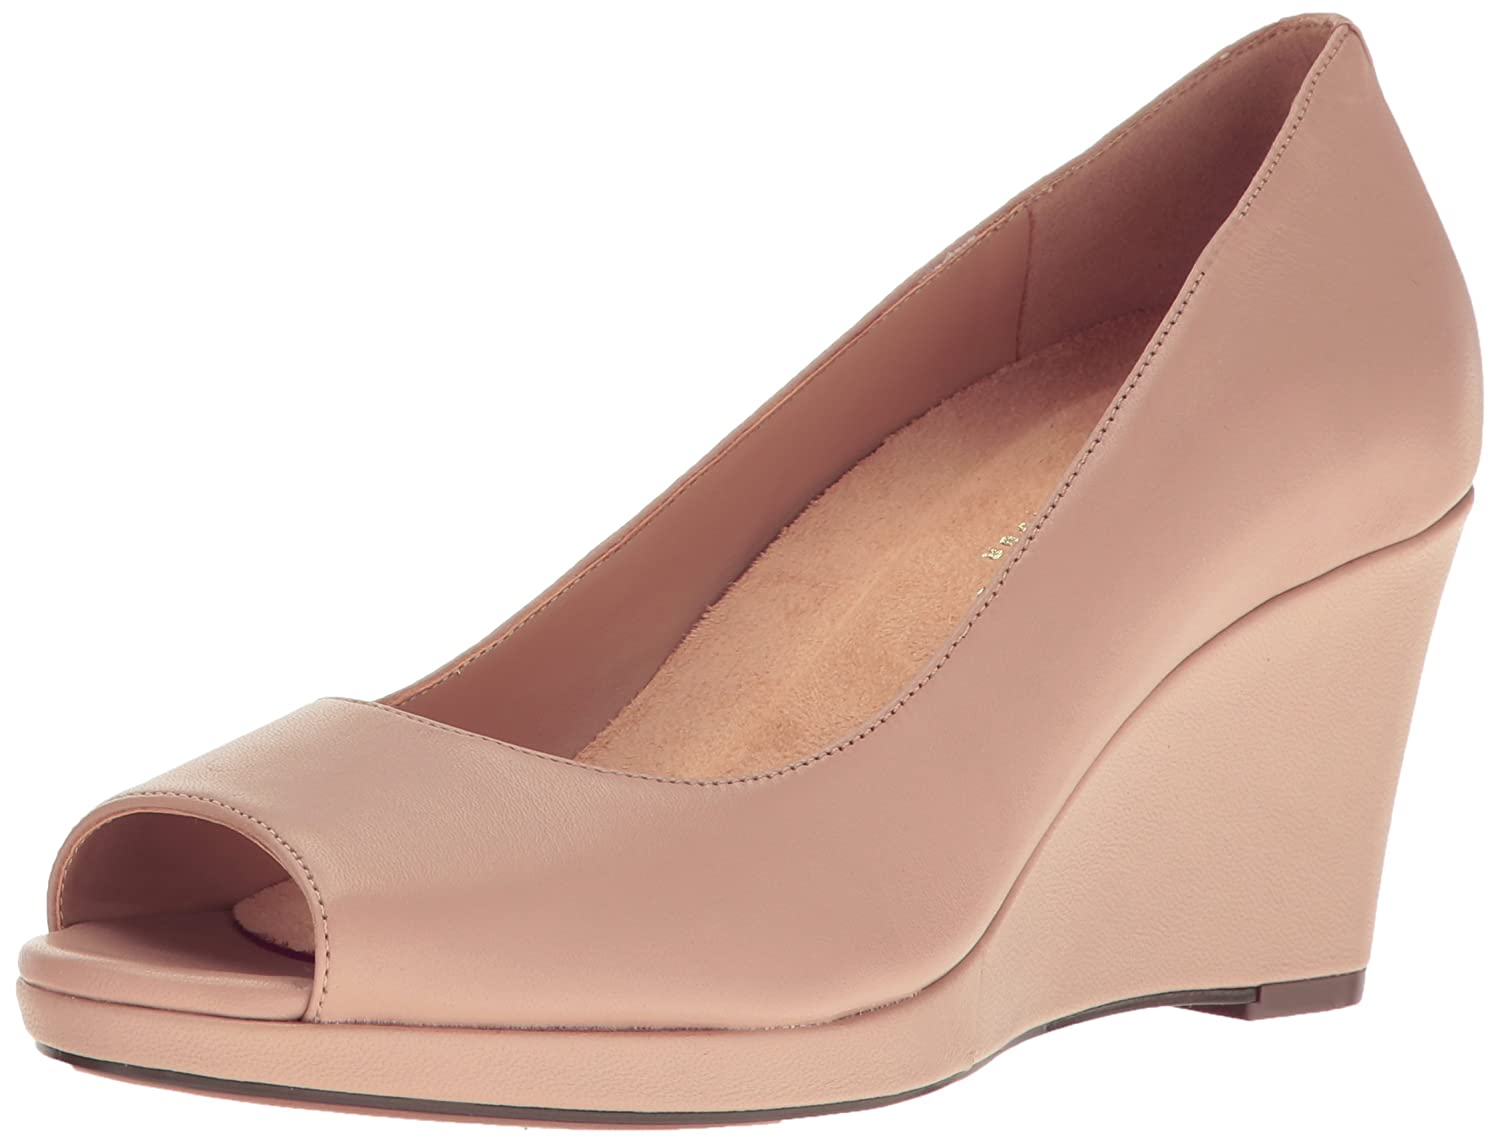 Naturalizer Women's Olivia Wedge Pump B01N3ZC977 6.5 2W US|Taupe